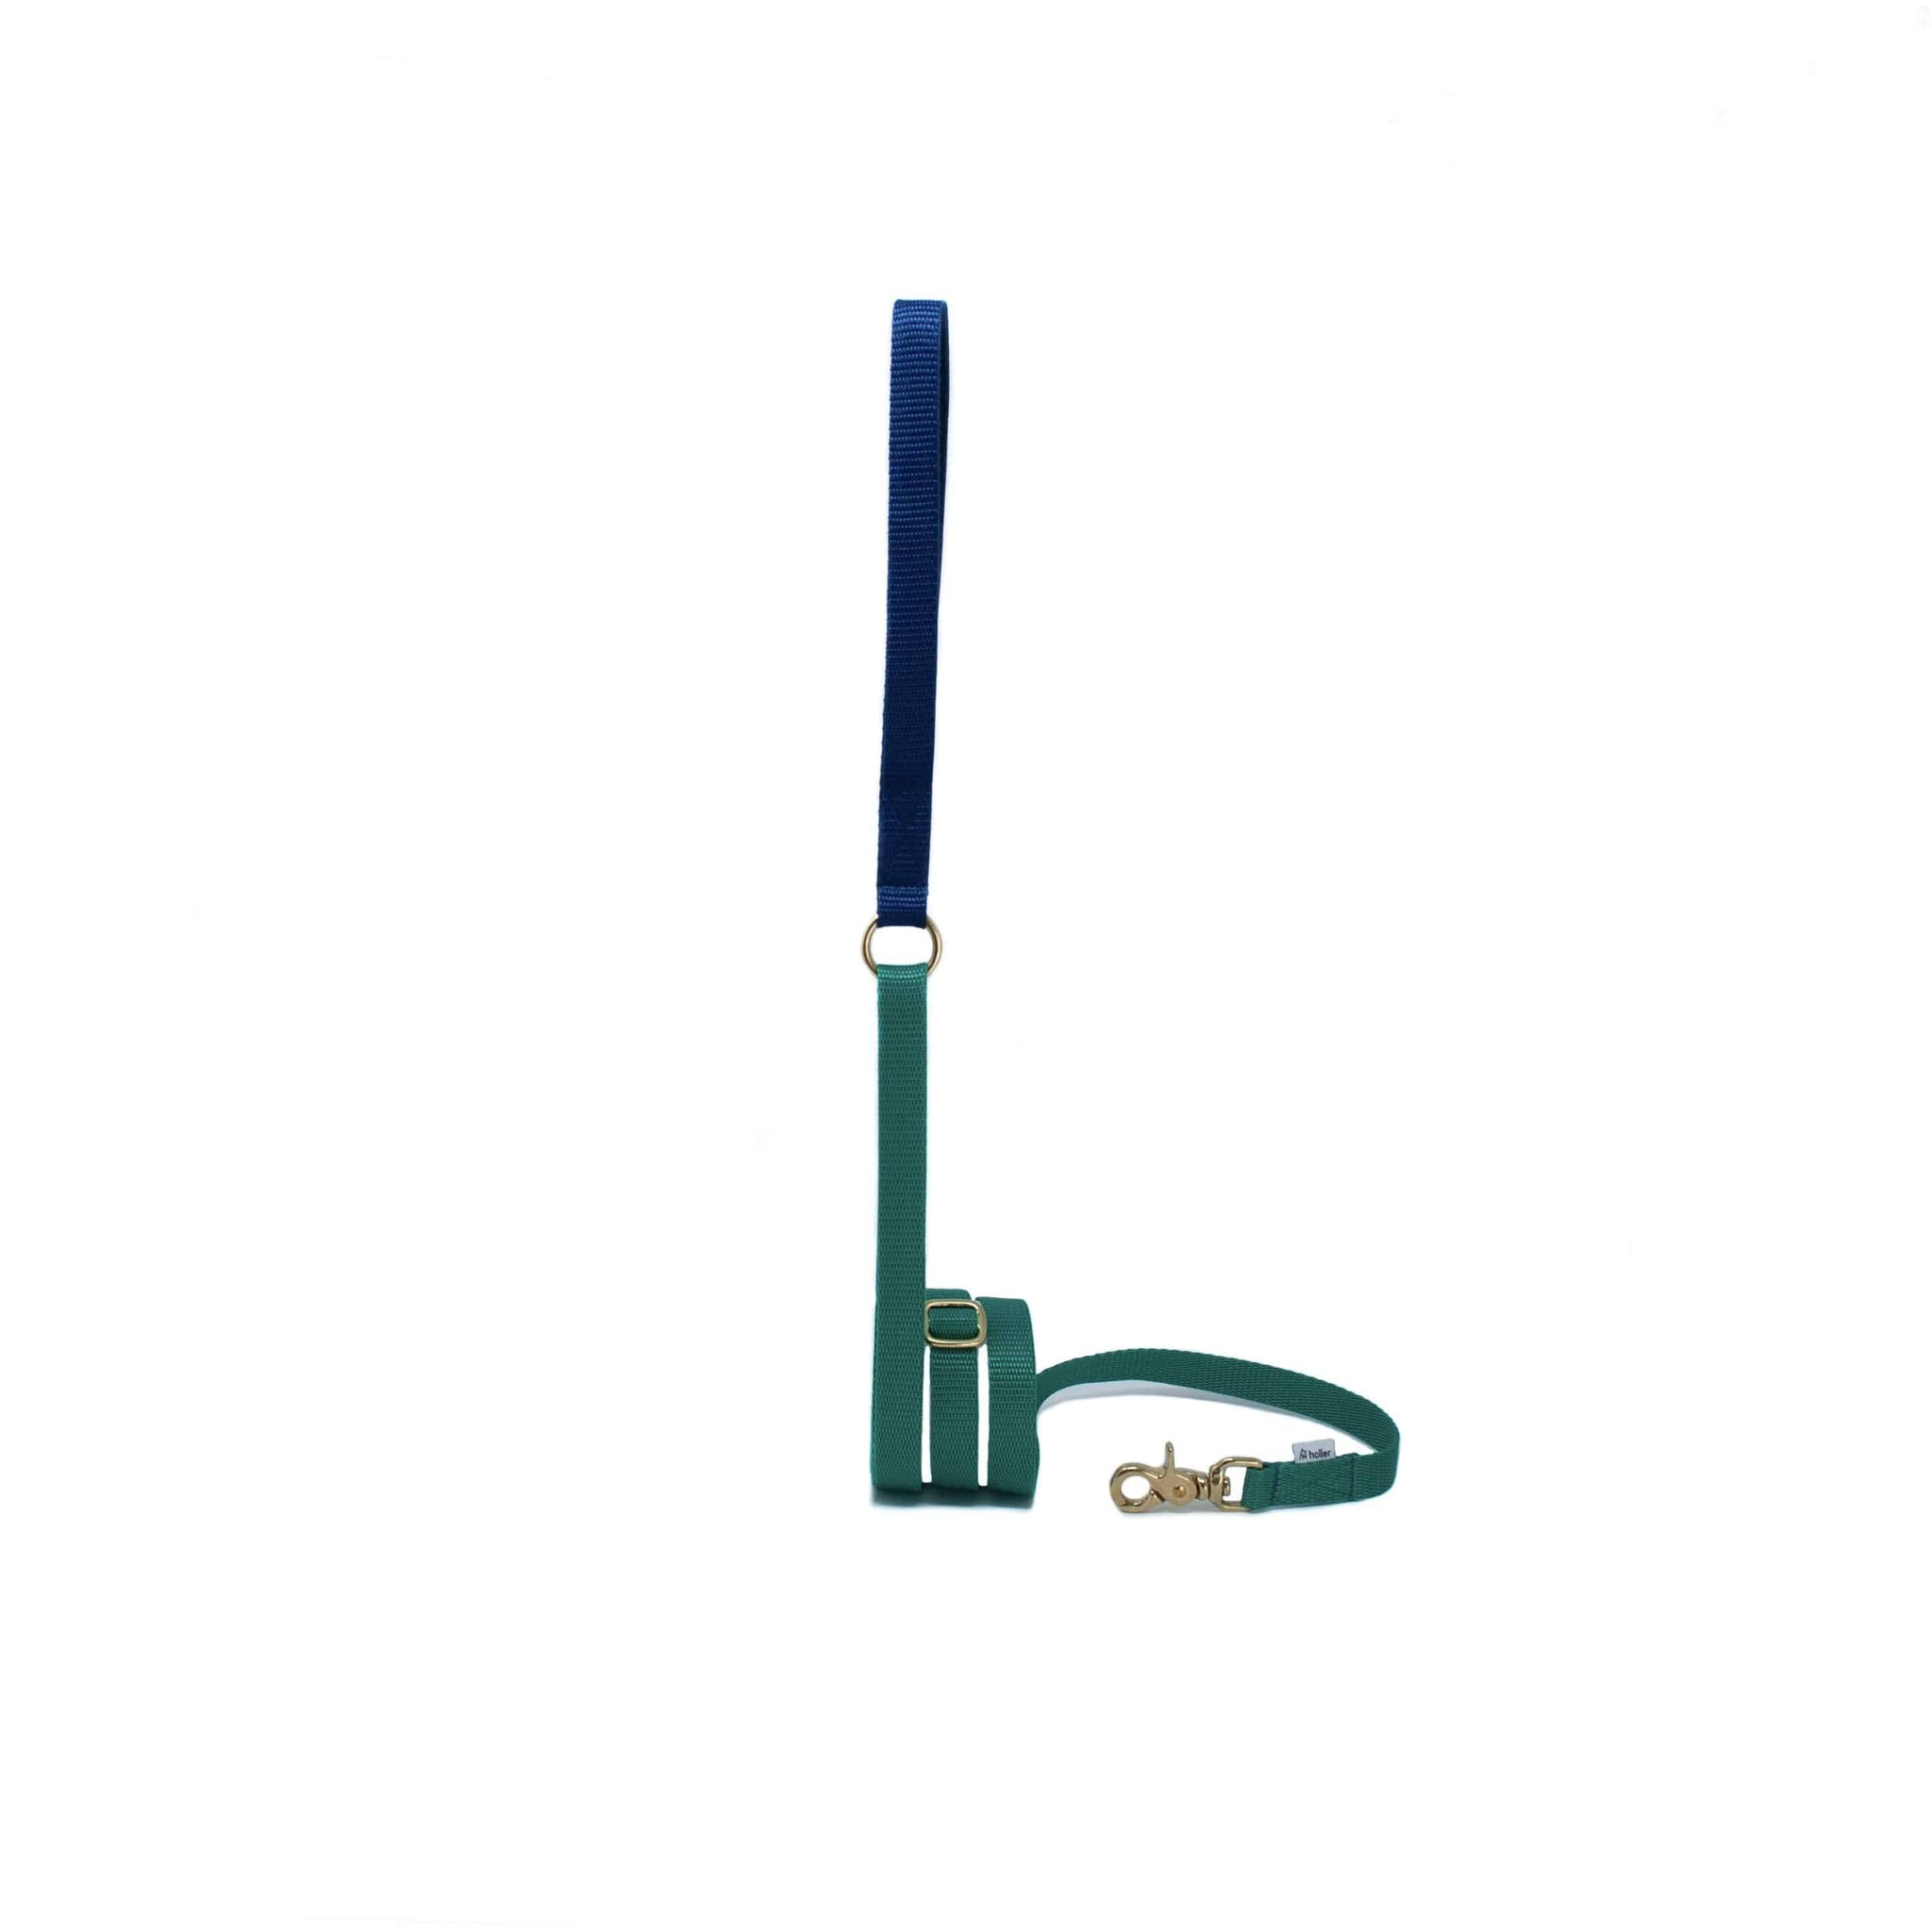 Extendable Holler Lead - Emerald & Navy Fleece Lined Handle - Holler Brighton